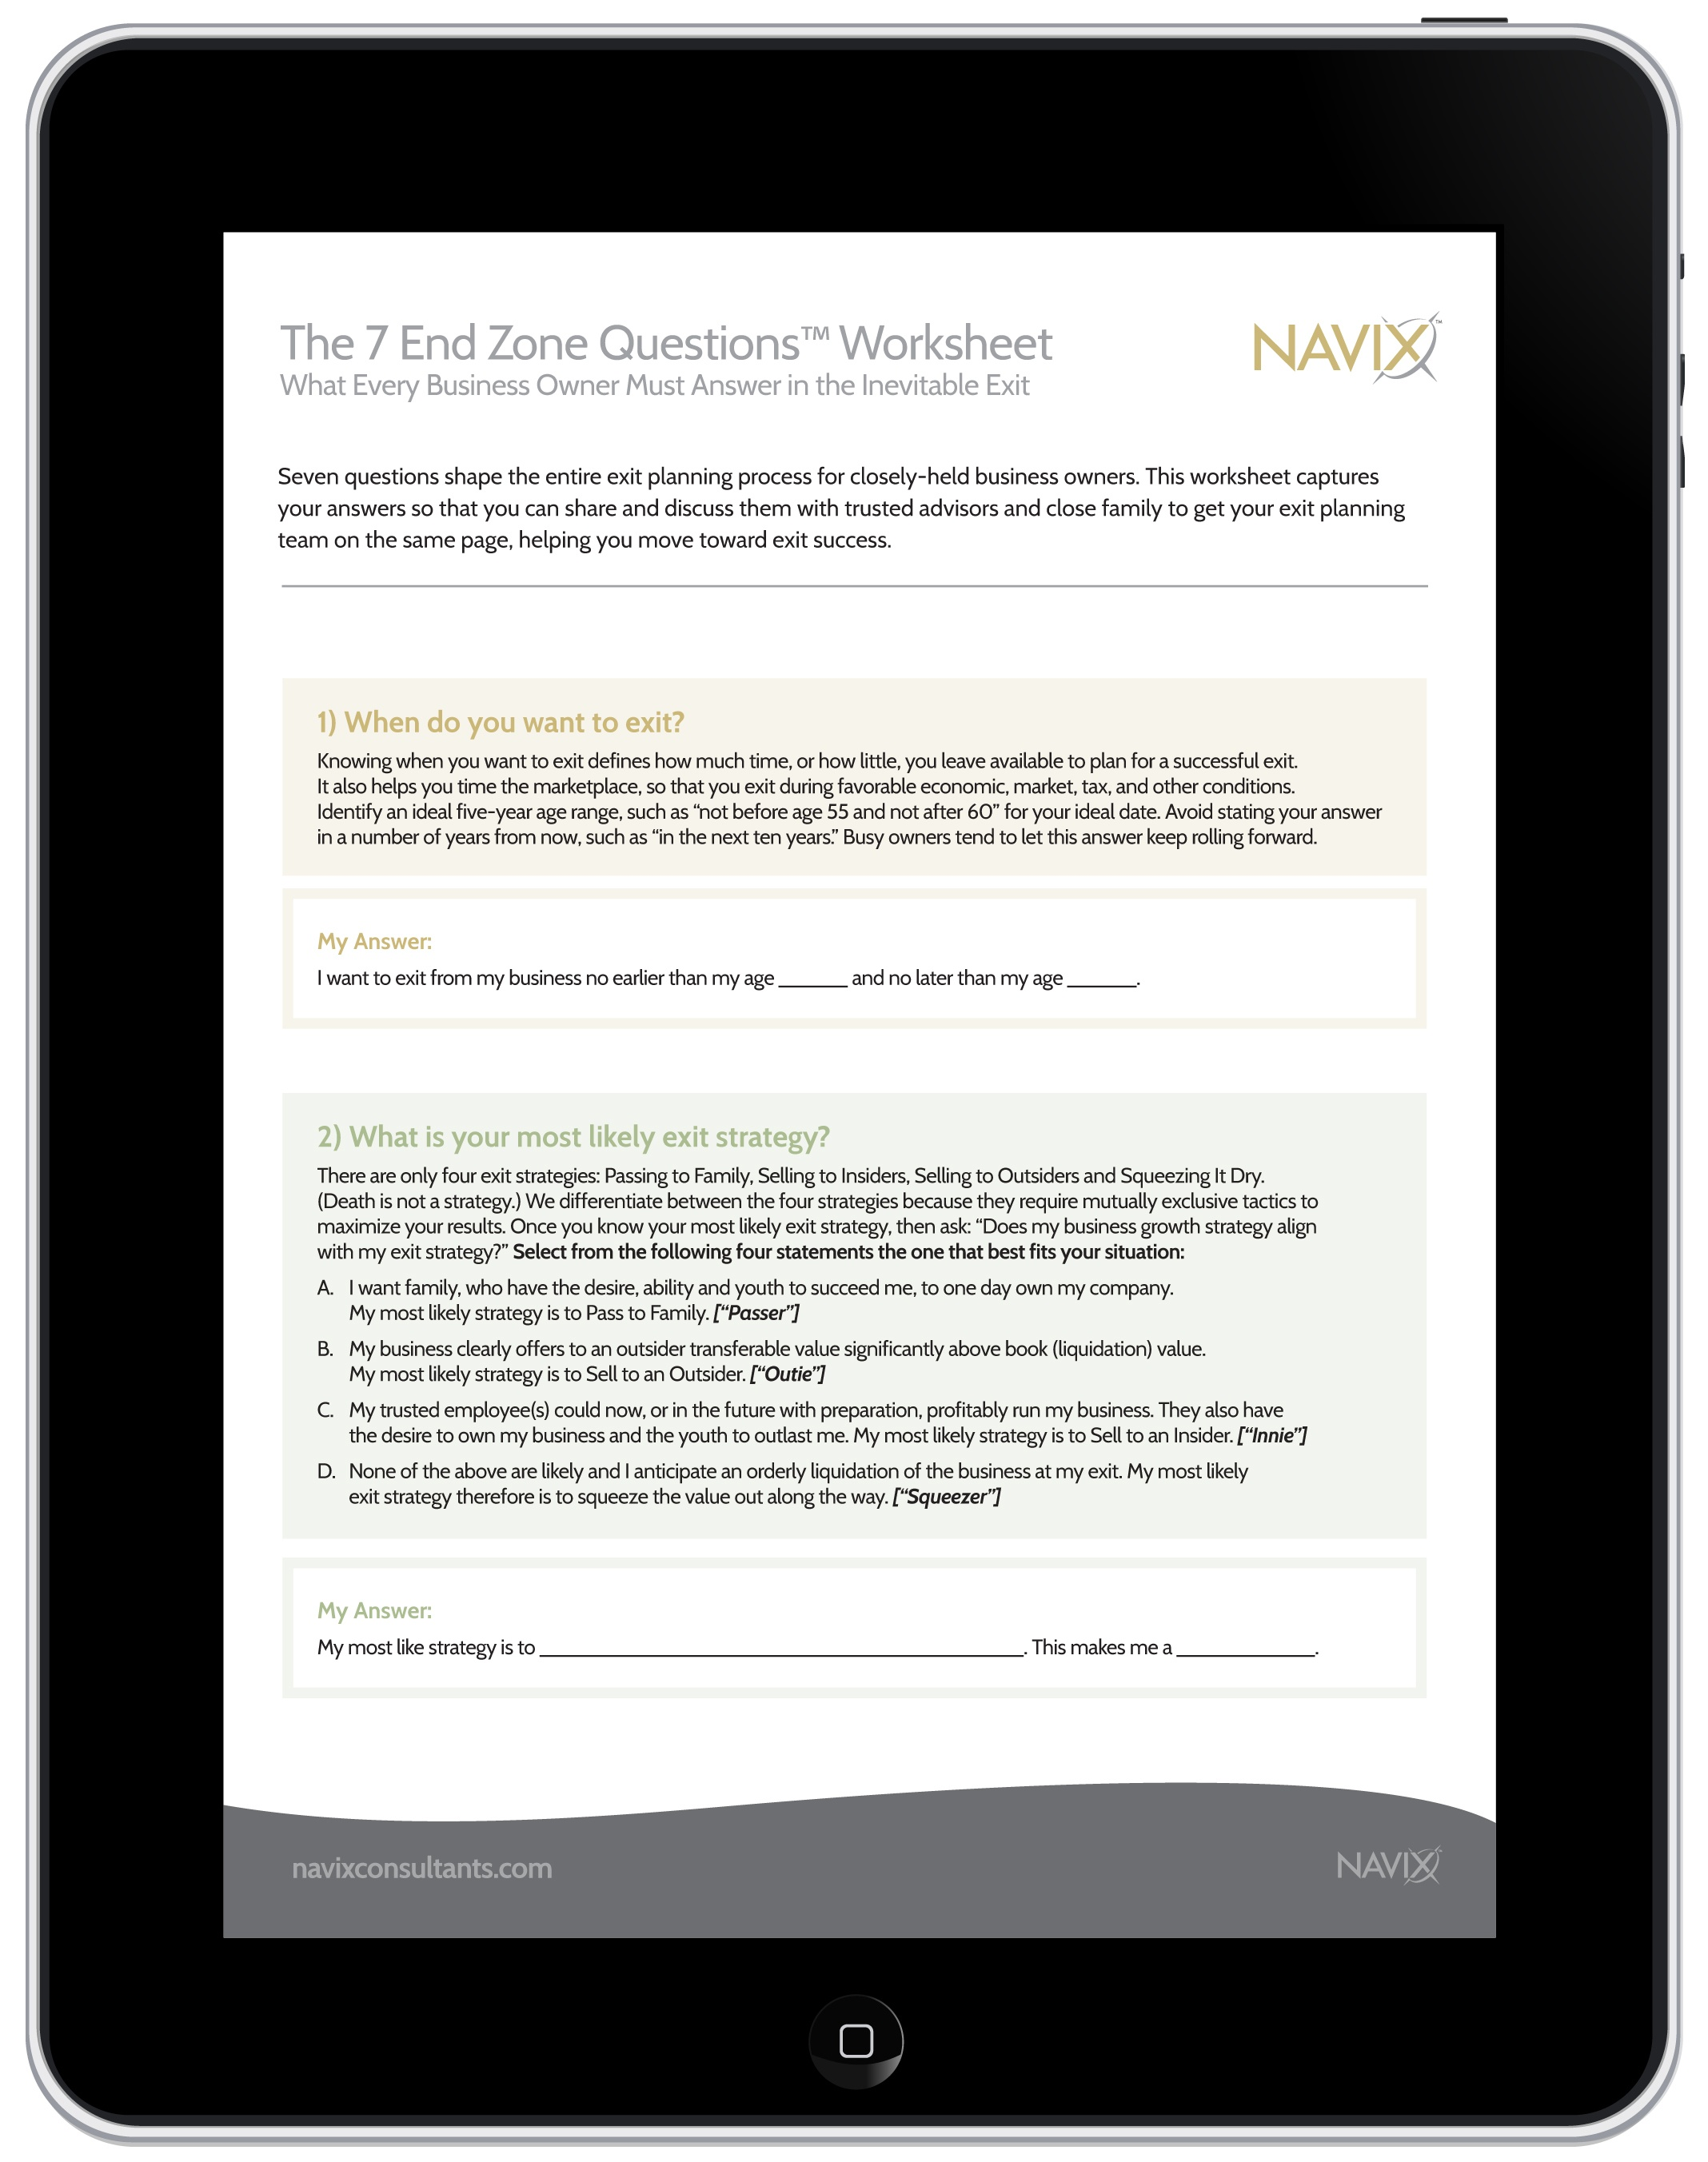 Navix 7 End Zone Questions Worksheet